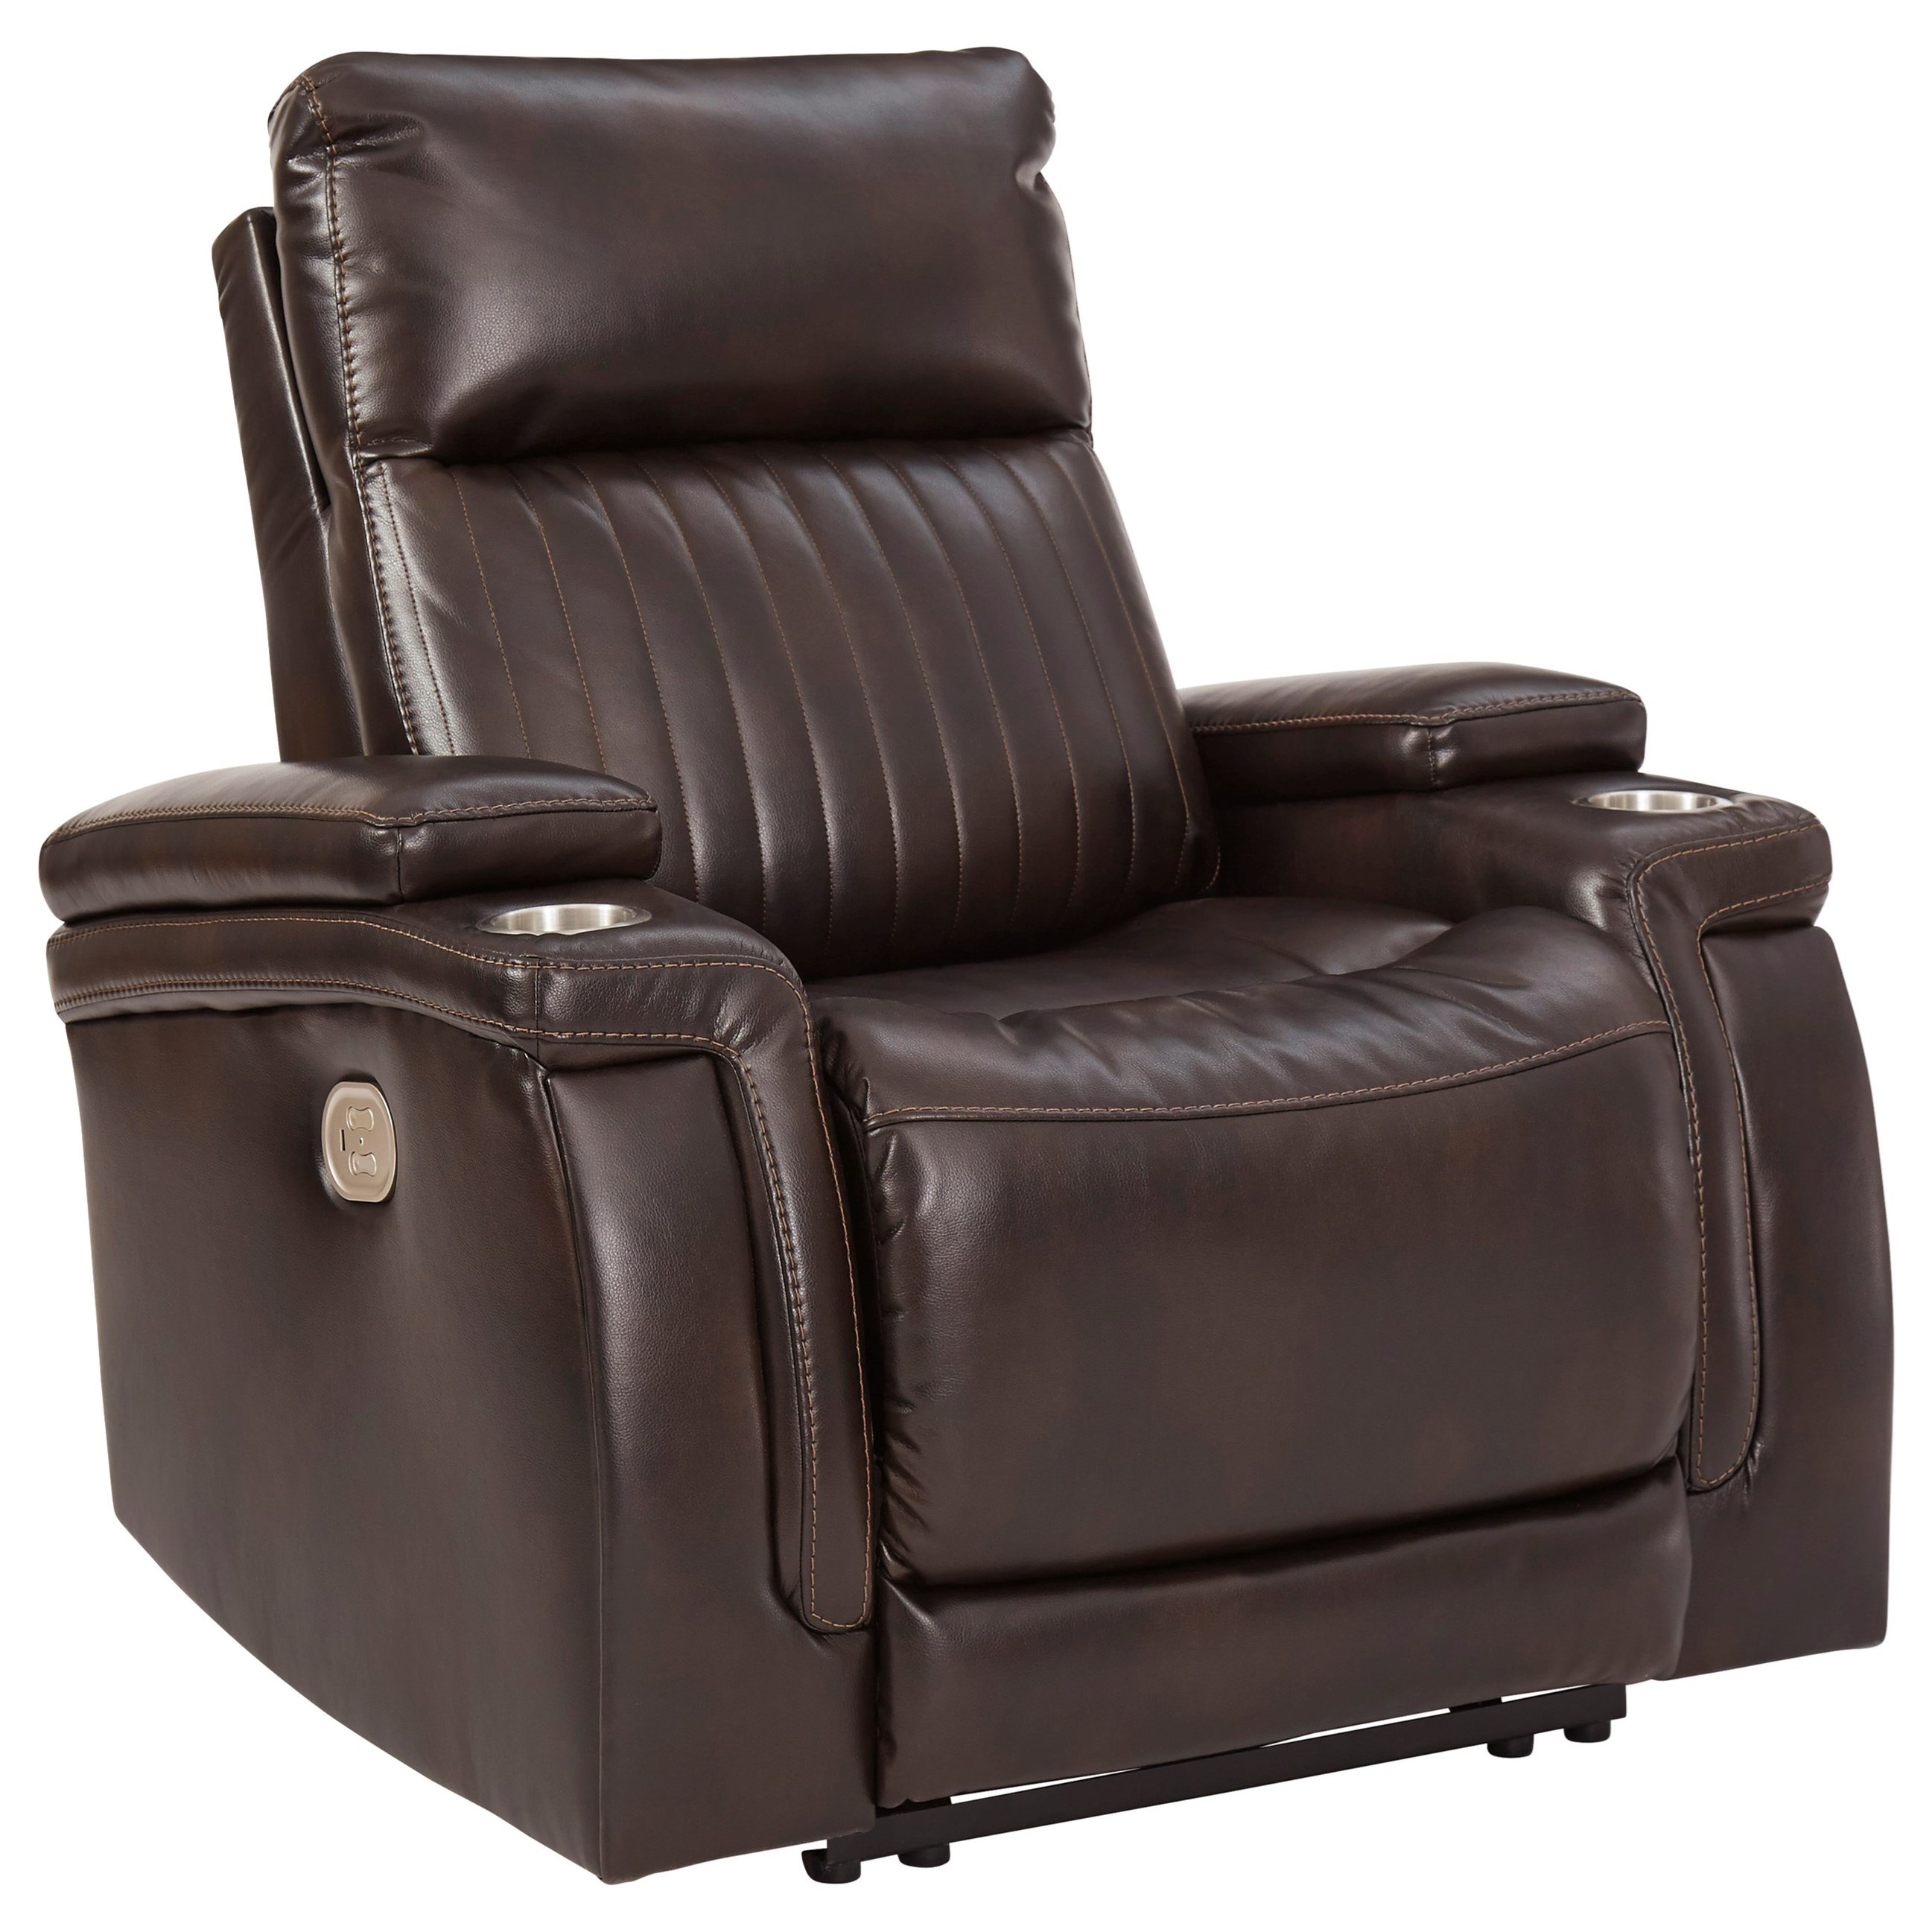 Team Time Power Recliner with Adjustable Headrest by Signature Design by Ashley at Value City Furniture